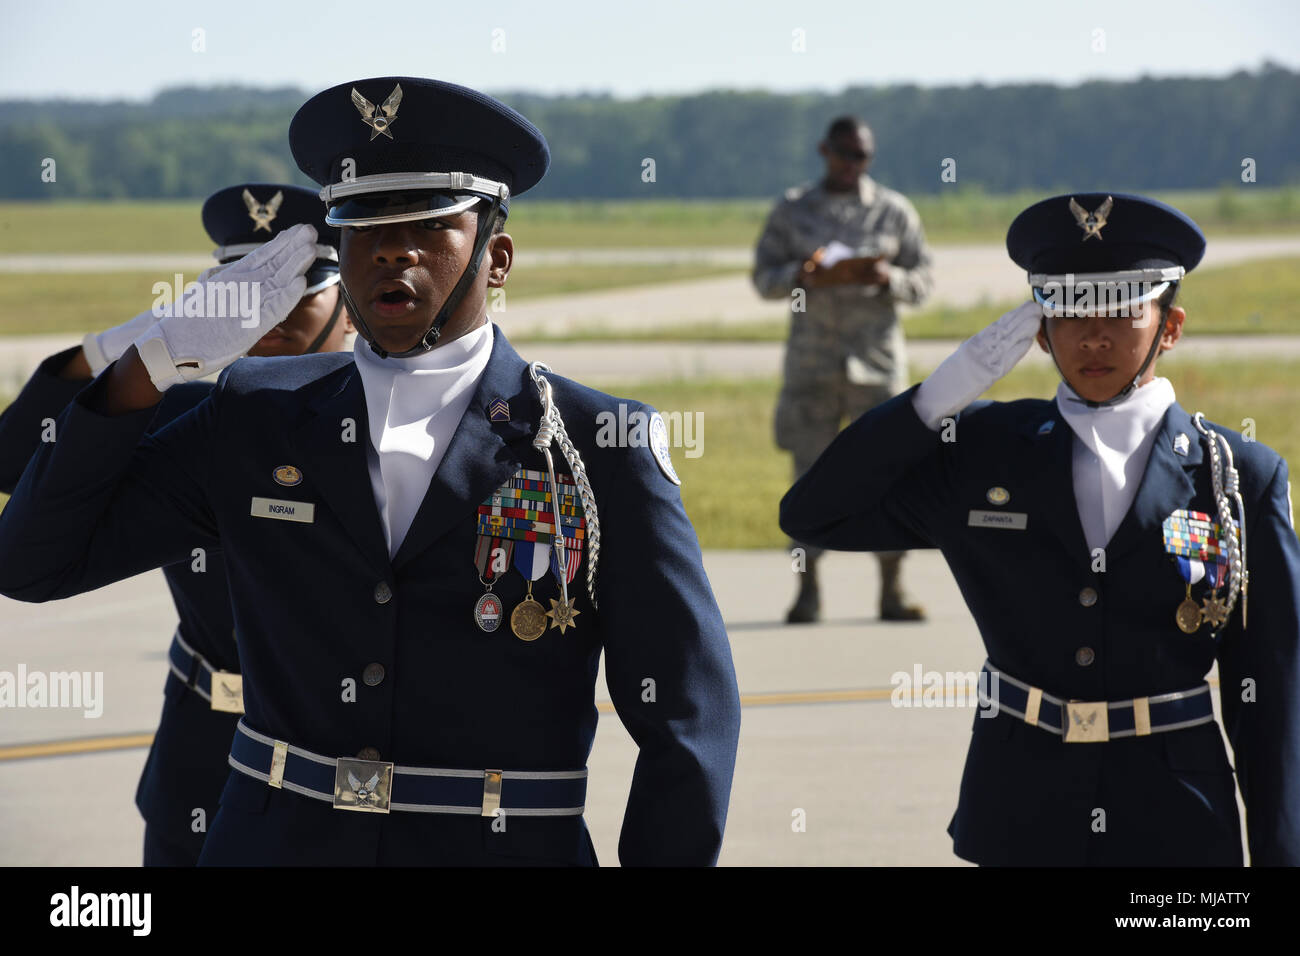 The Spring Valley High School IDR Squad Unarmed team from Columbia, S.C. competes during he annual Top Gun Drill Meet at McEntire Joint National Guard Base, S.C., April 28, 2018. High School junior ROTC cadets from across the state competed in drill and ceremony events sponsored by the South Carolina Air National Guard. (U.S. Air National Guard photo by Senior Master Sgt. Edward Snyder) - Stock Image